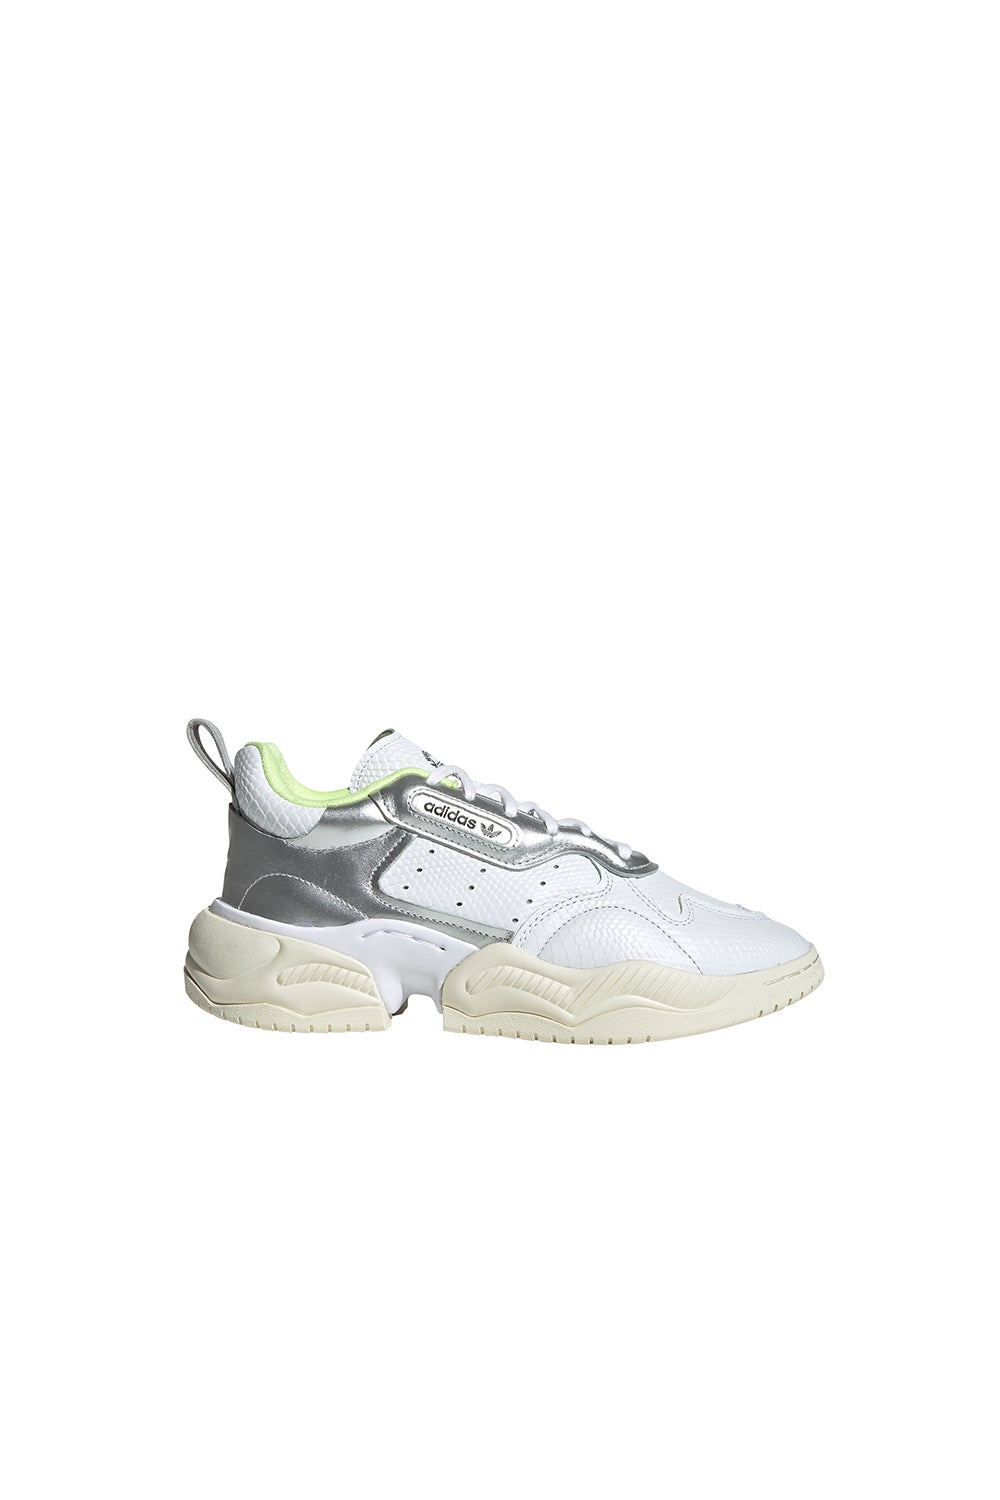 adidas Supercourt RX Cloud White/Frozen Yellow